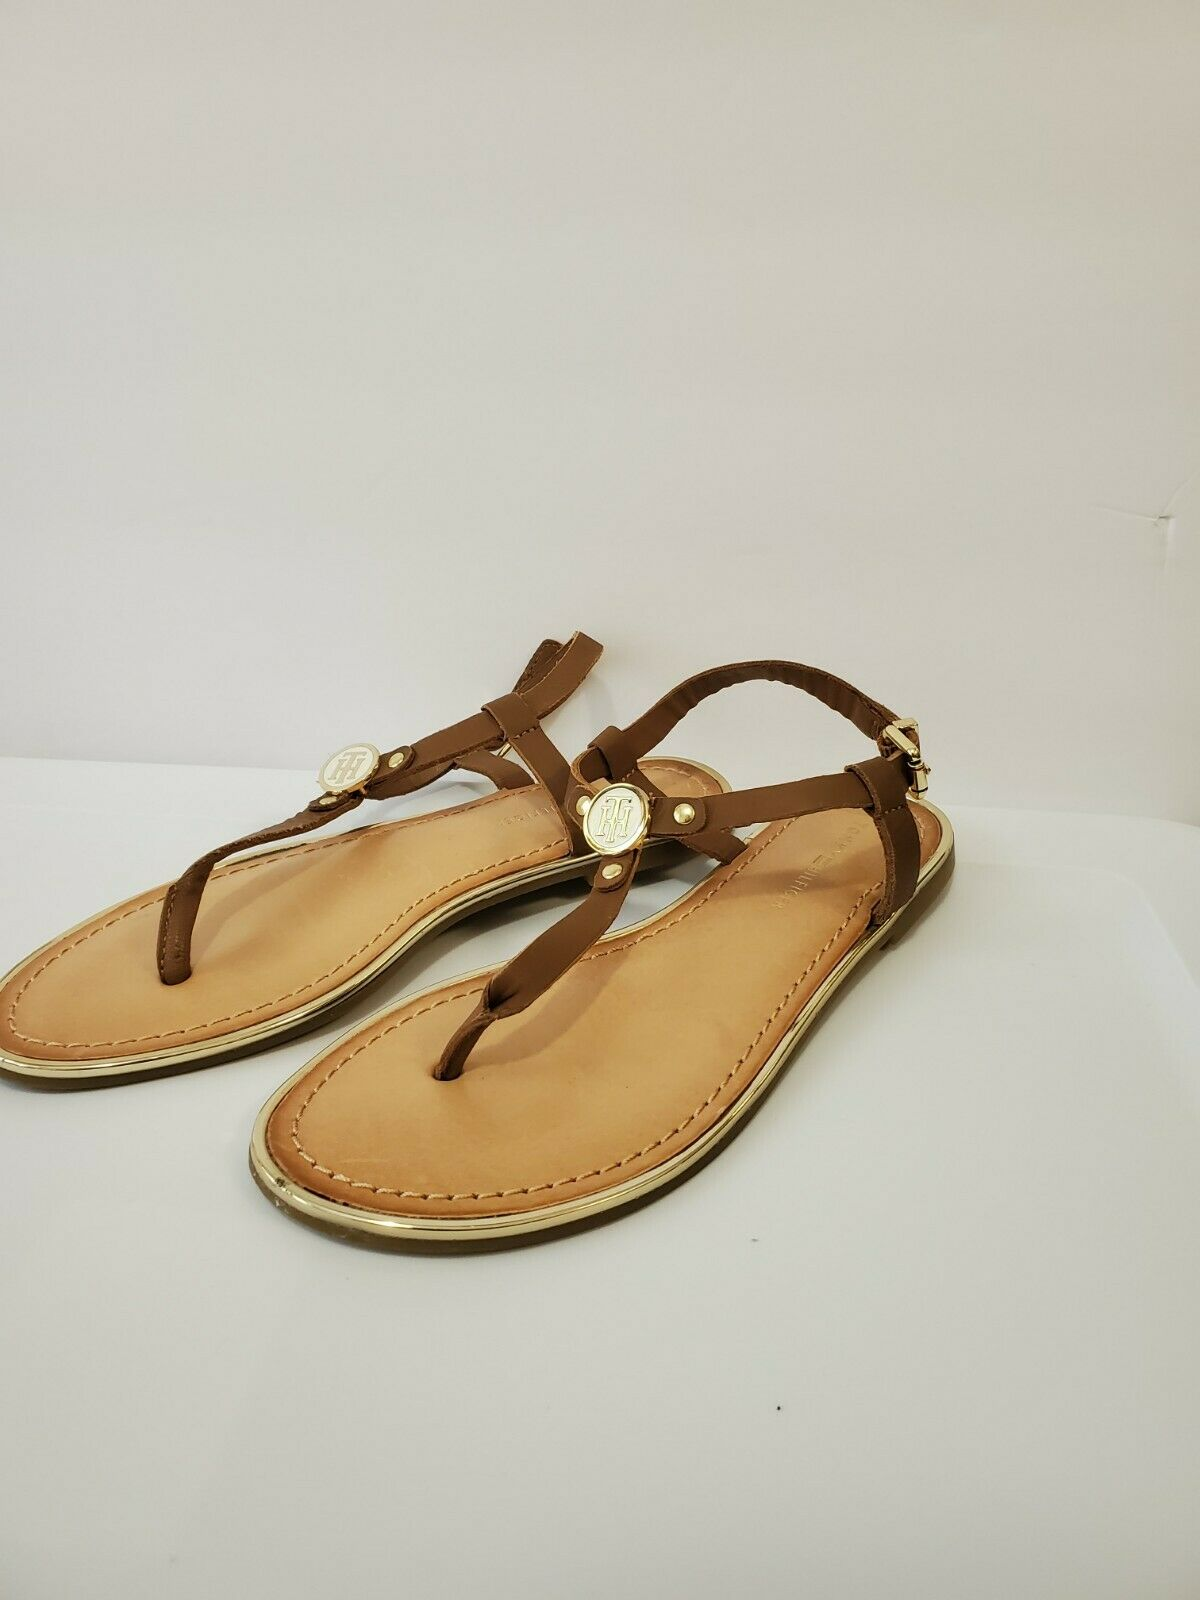 Tommy hilfiger women Brown Leather Sandals  - image 8